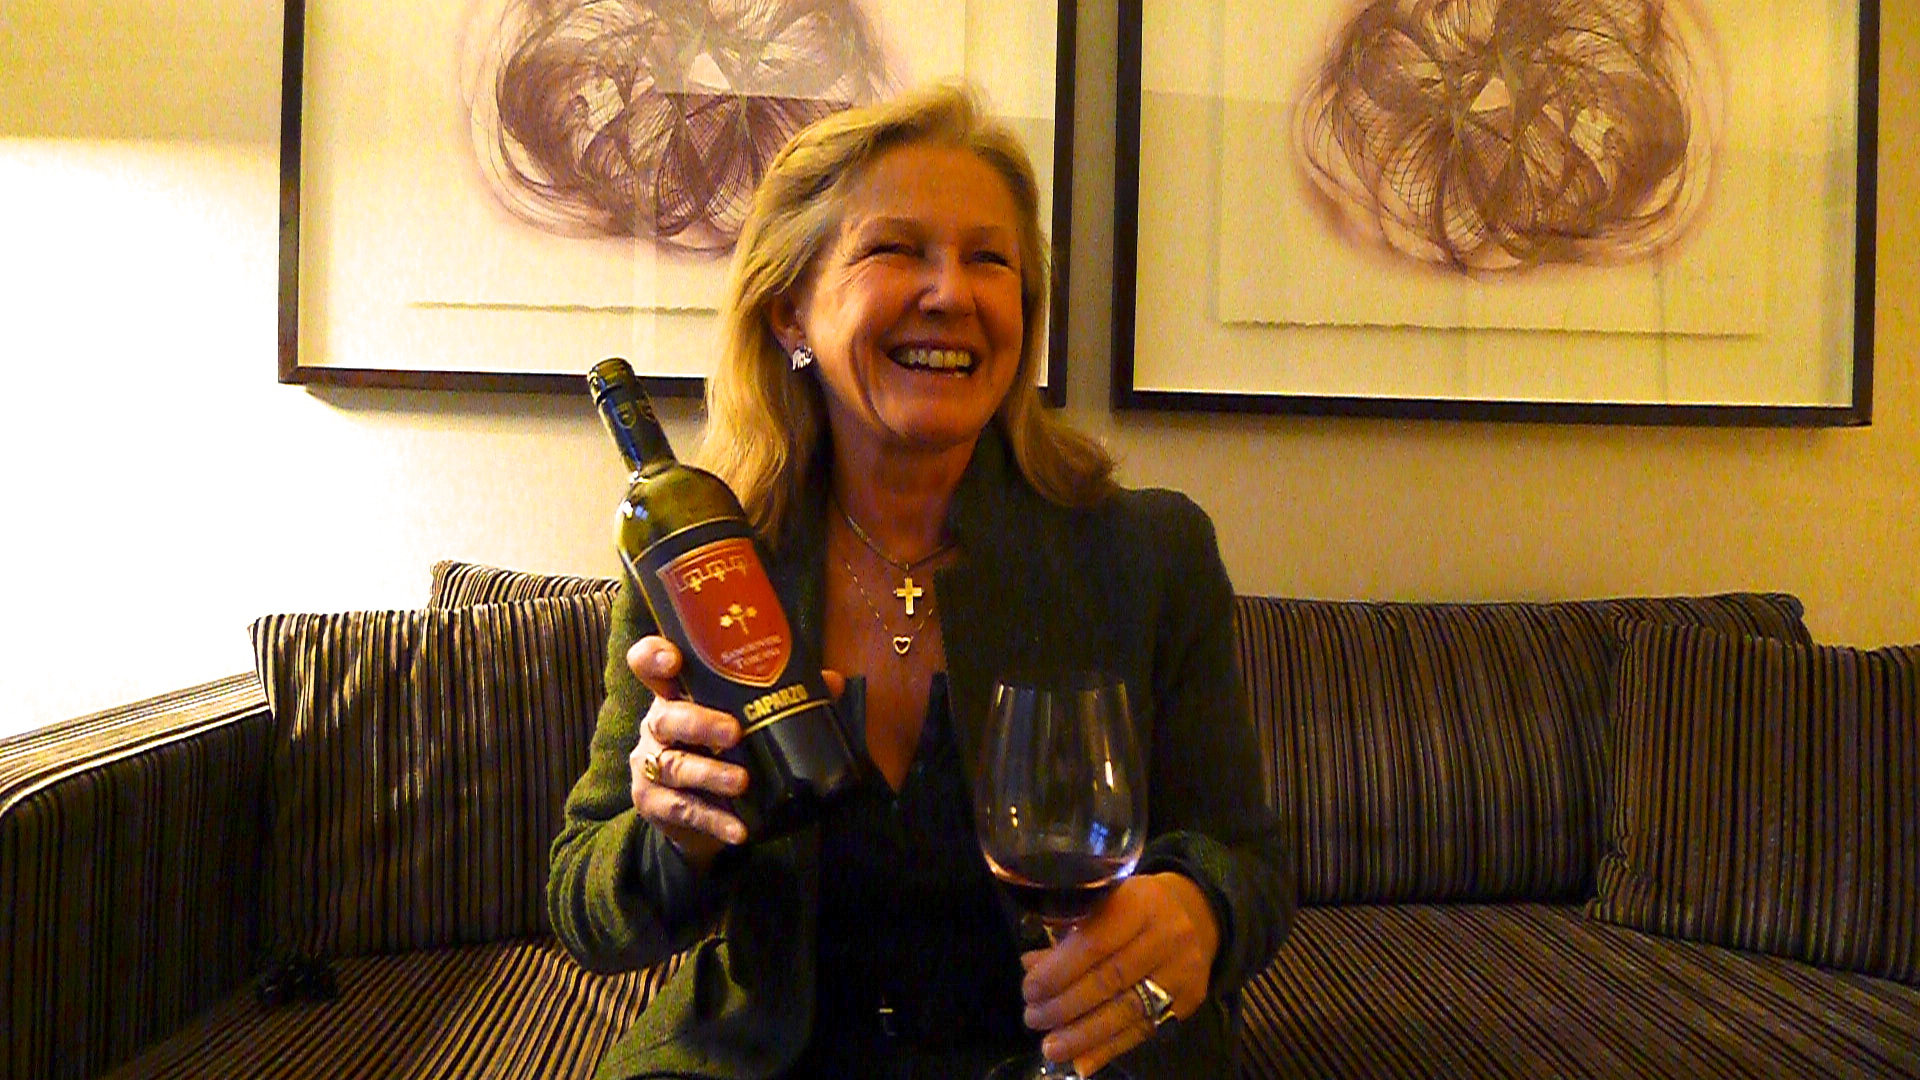 In Toronto this week for the launch of her new wine, Elisabetta Gnudi Angelini certainly loves what she does.